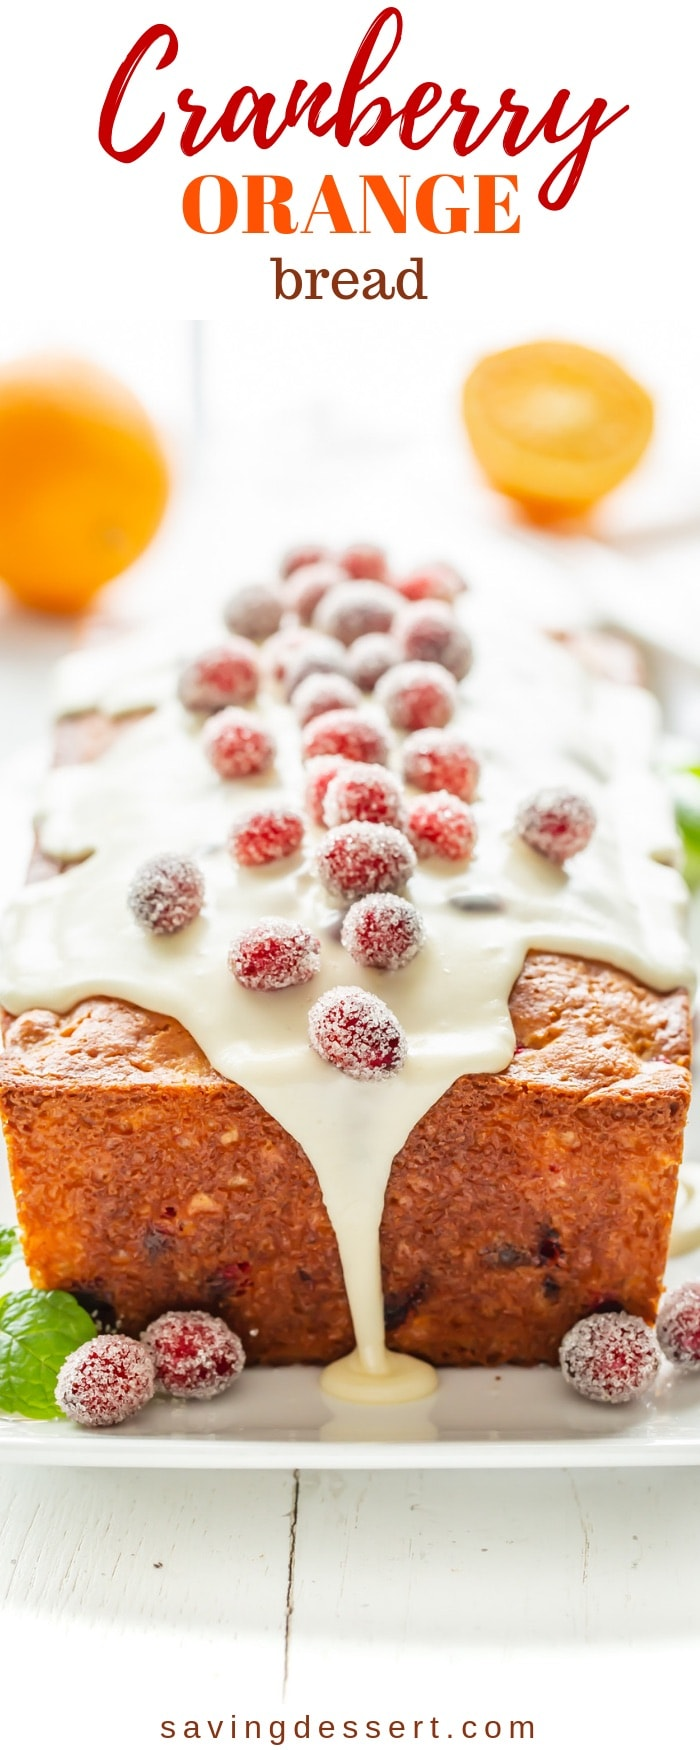 Cranberry Orange Bread - An easy and quick holiday inspired loaf cake loaded with fresh cranberries and a simple orange glaze with sugared cranberries for a festive touch. #savingroomfordessert #orange #cranberry #cranberryorange #loafcake #cake #cranberrycake #quickbread #holidaycake #holidaybread #holidayquickbread #christmas #holidaybaking